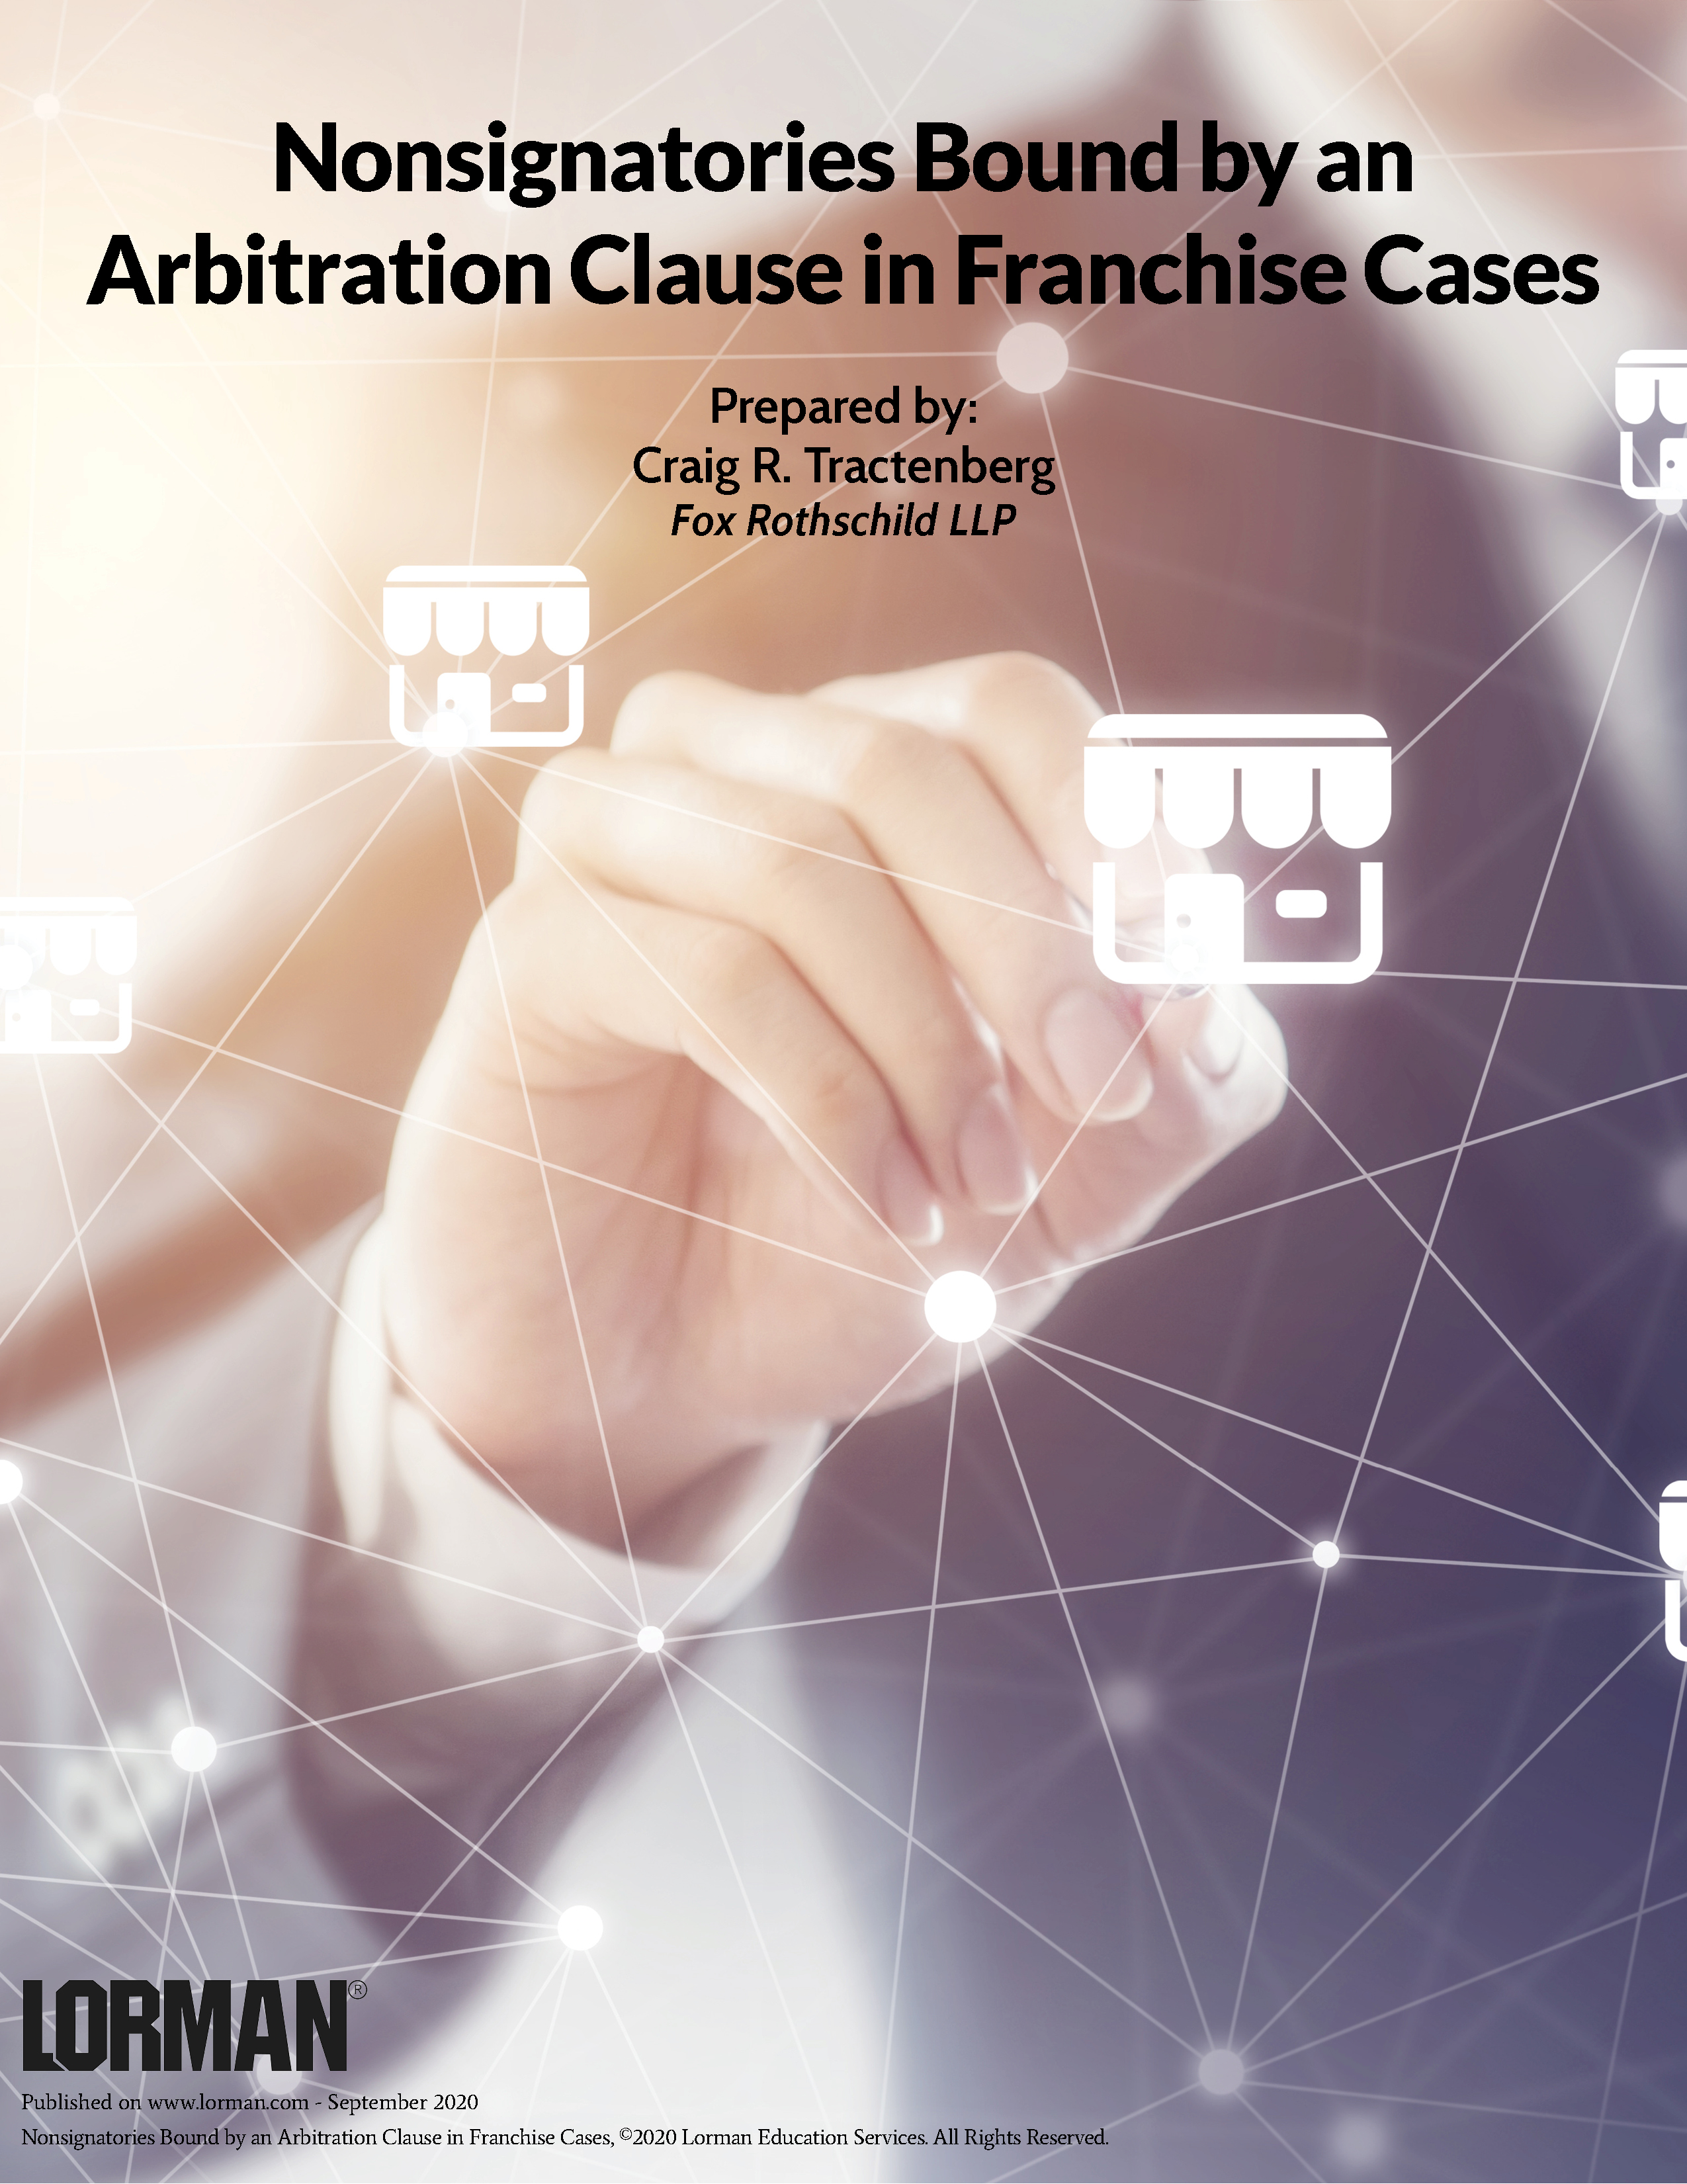 Nonsignatories Bound by an Arbitration Clause in Franchise Cases